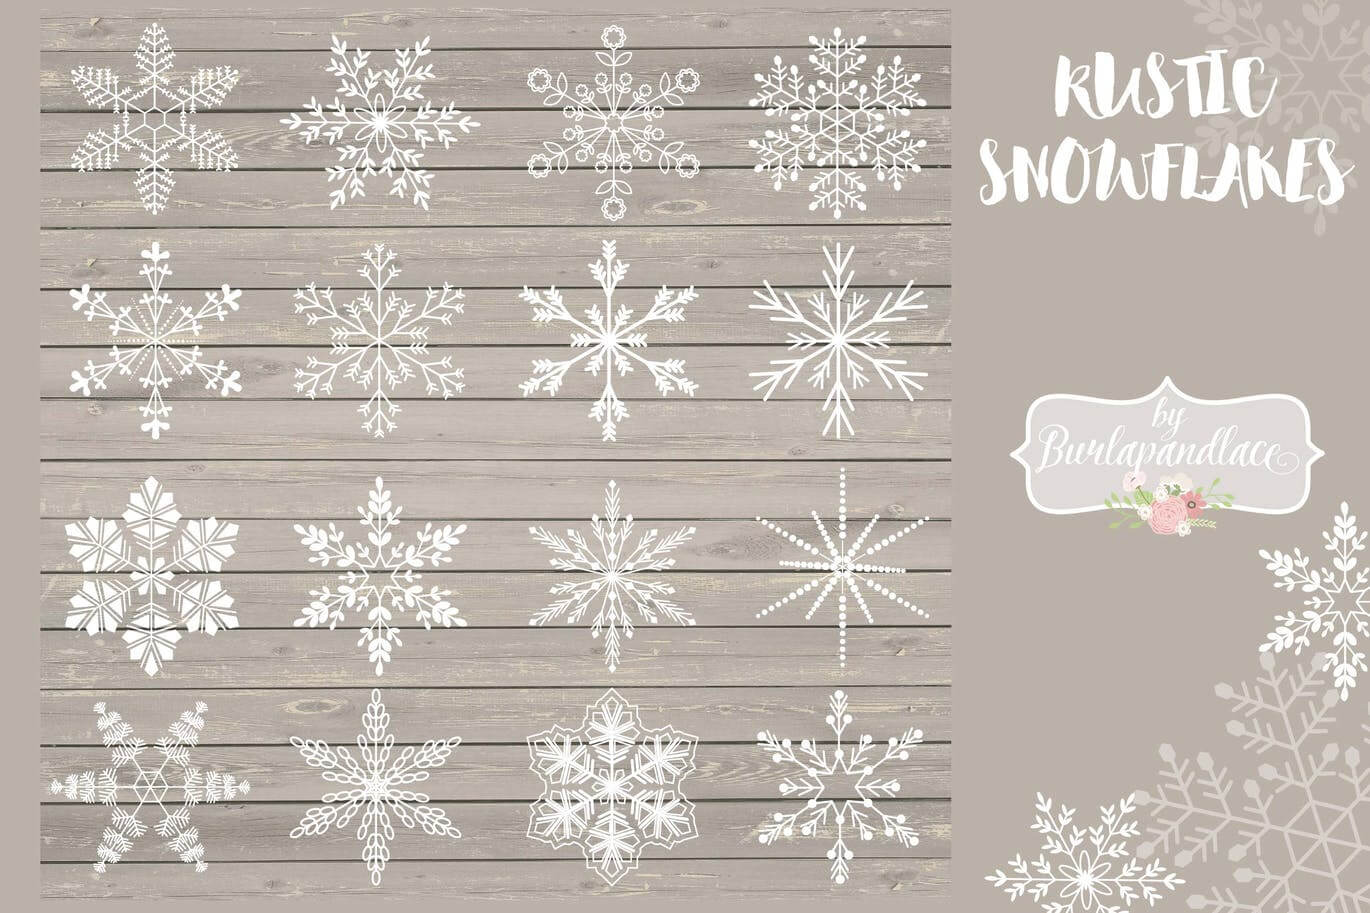 Rustic snowflakes cliparts